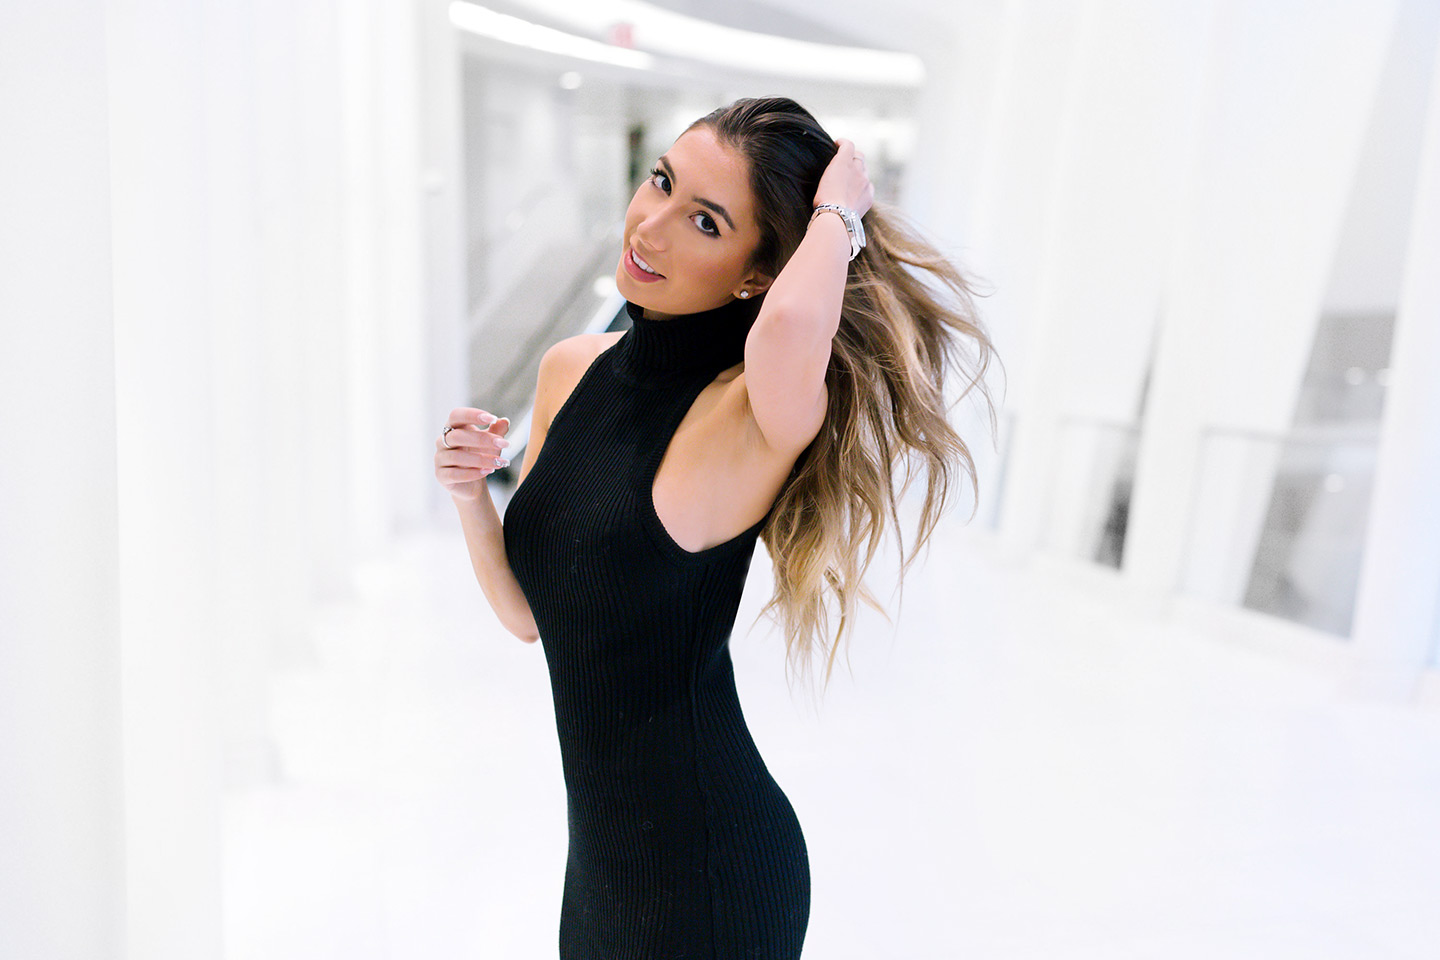 Black dress in White World Trade Center. Photoshoot in Oculus